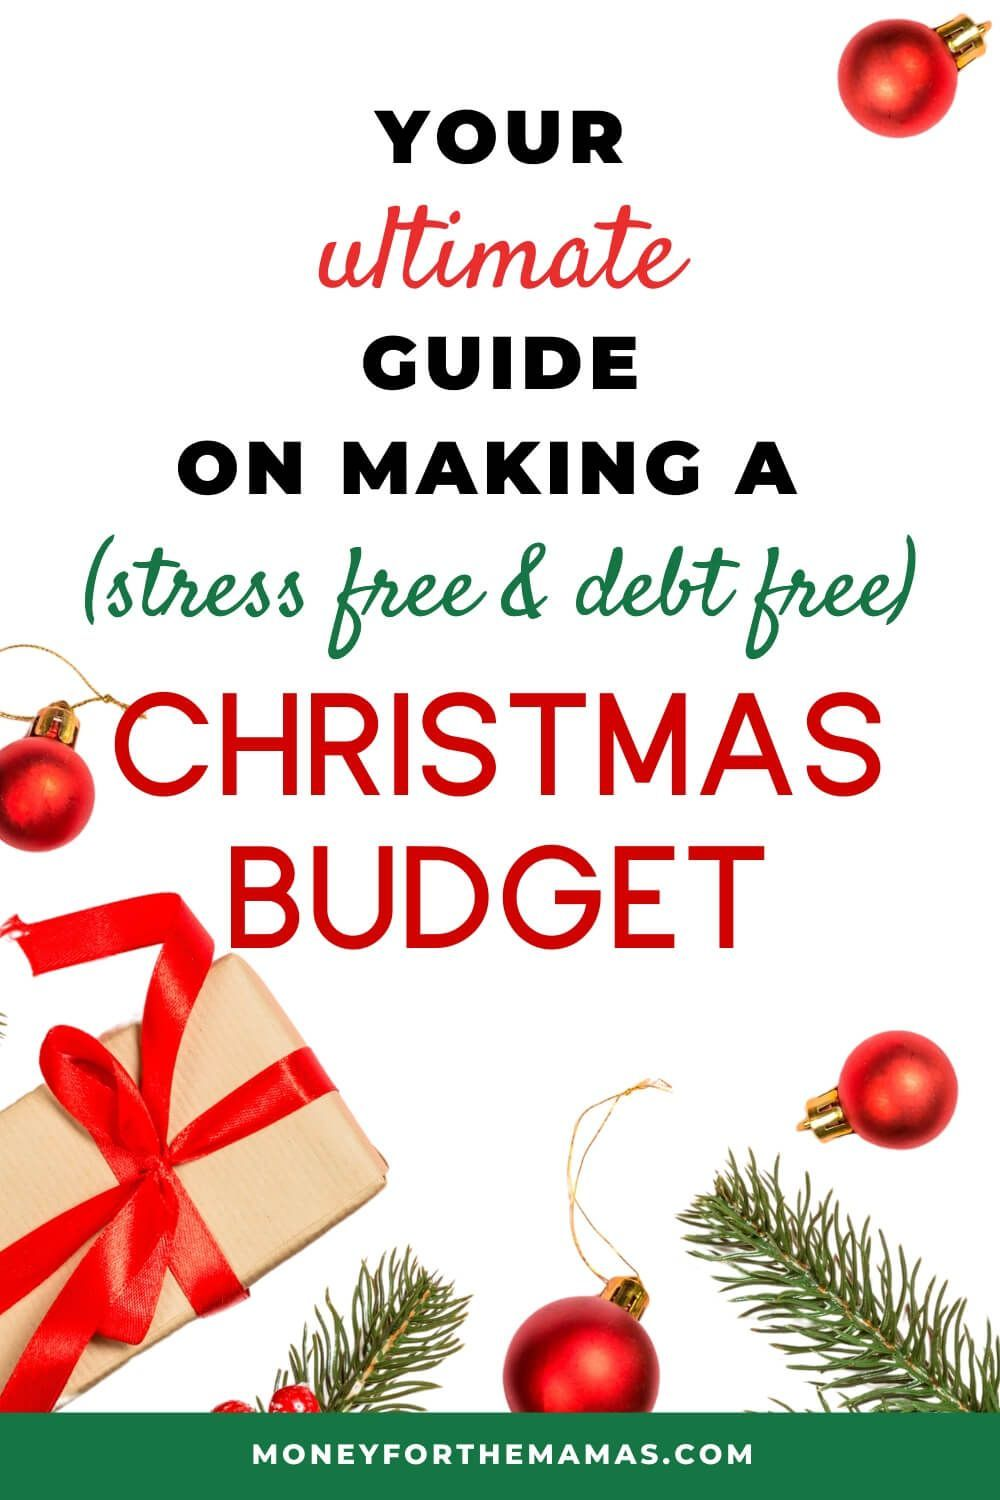 Christmas 2020 Debt Free Your Ultimate Guide to a Stress Free (and Debt Free) Christmas